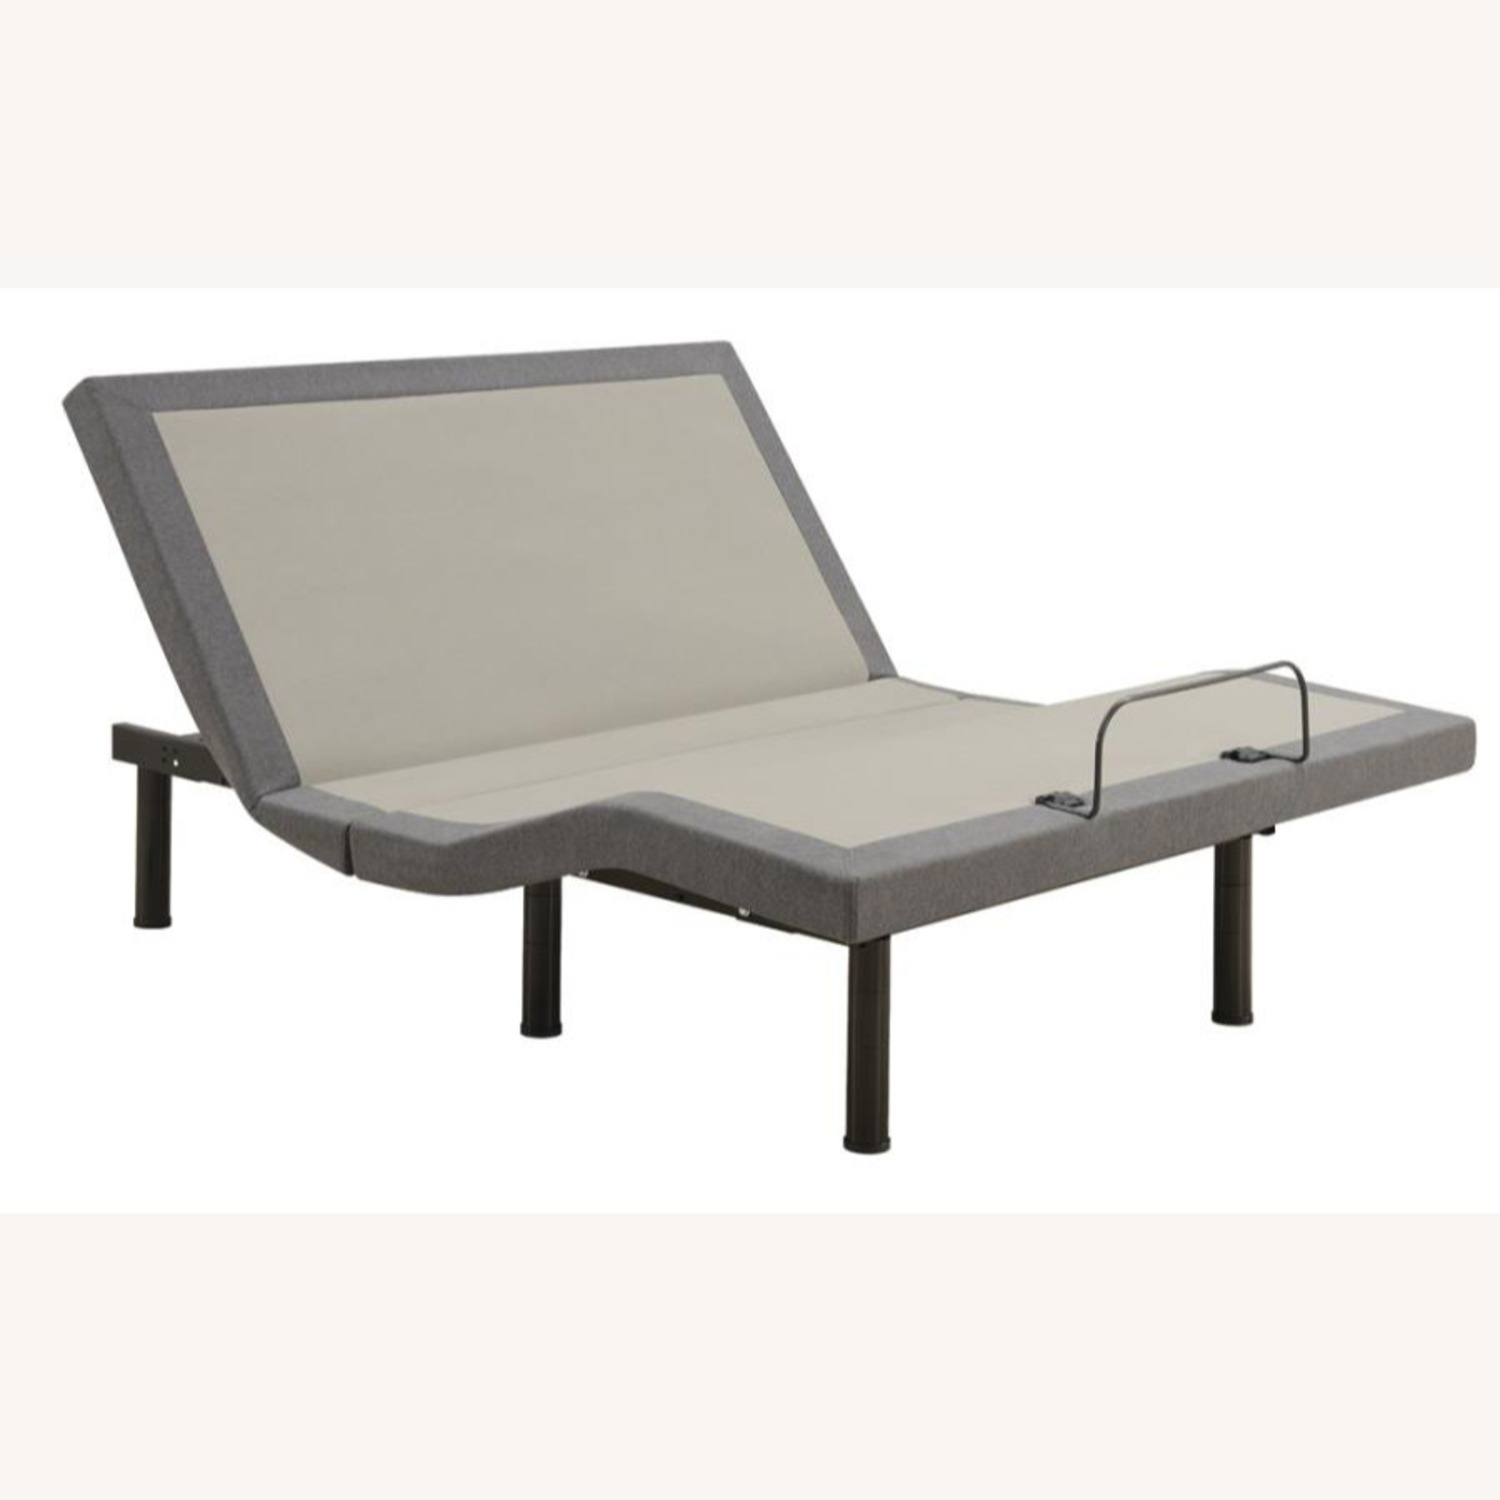 Adjustable Queen Bed W/ Dual USB Charging Station - image-0